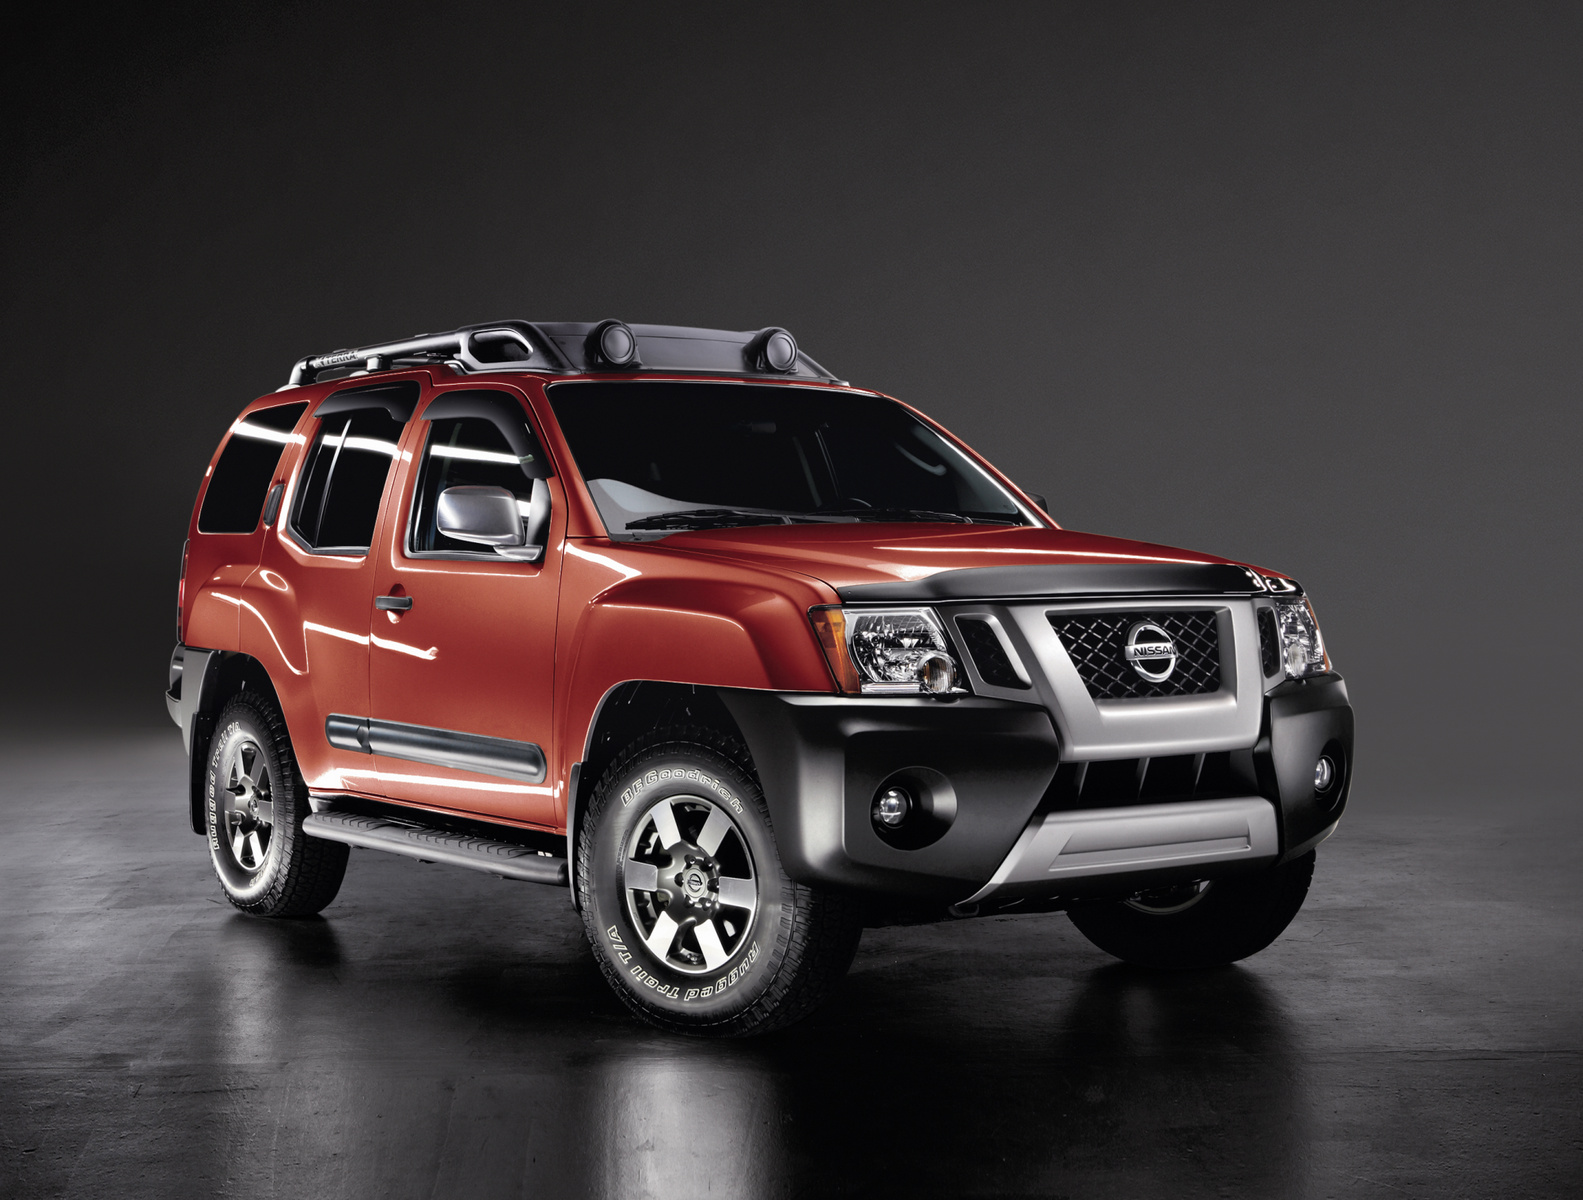 Home / Research / Nissan / Xterra / 2013